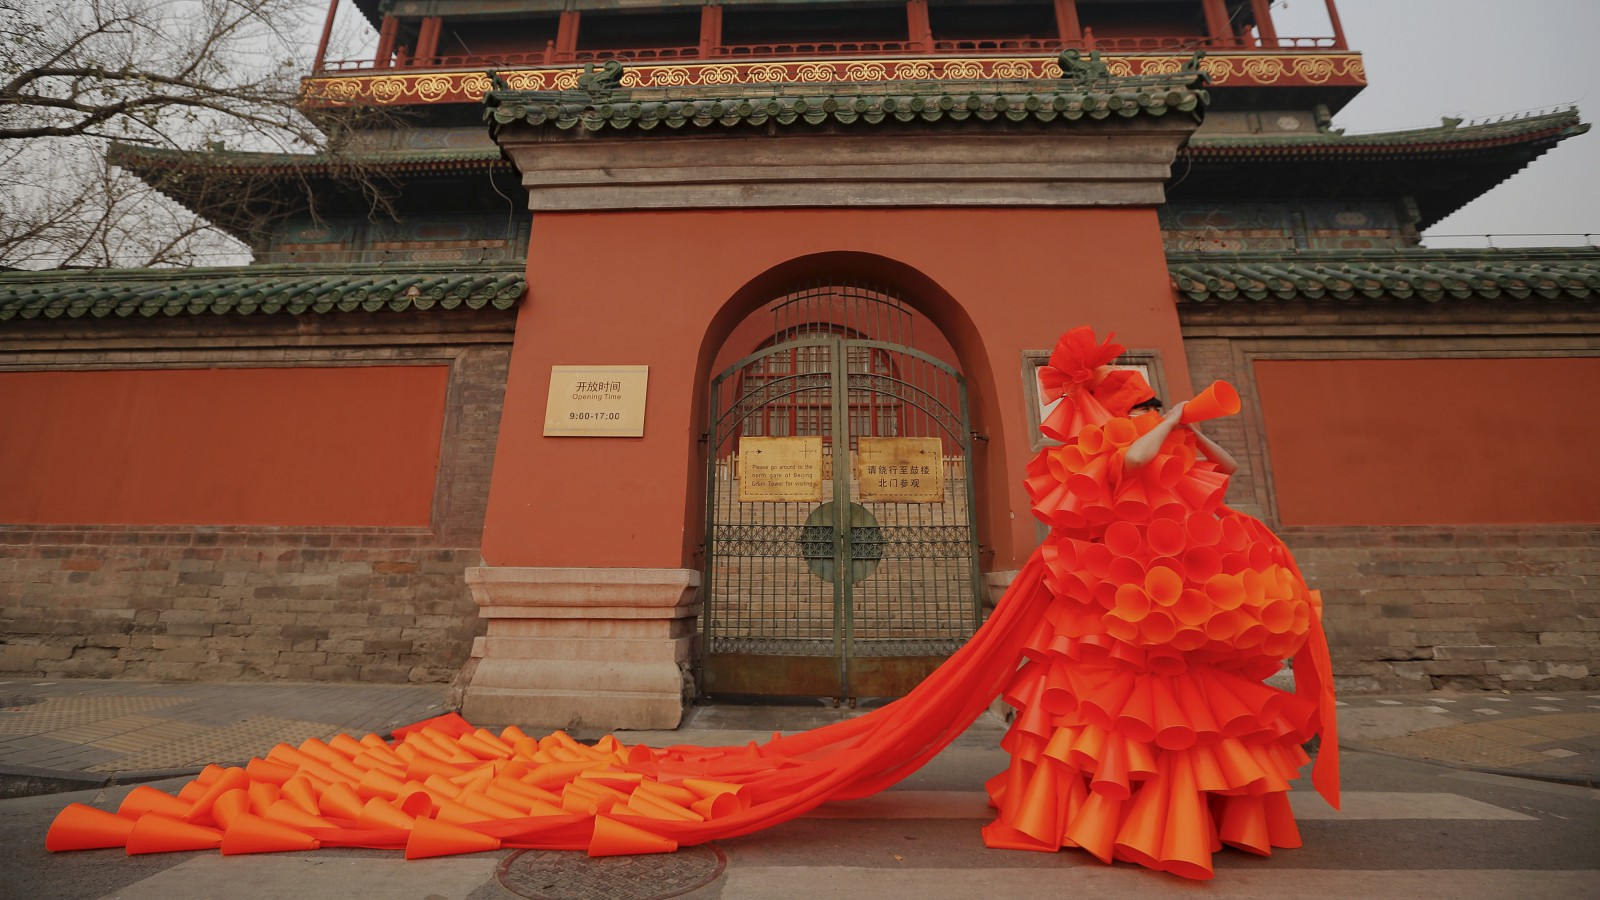 "Chinese artist Kong Ning symbolically makes warning sounds in her costume made of hundreds of orange plastic blowing horns during her art performance raising awareness of the hazardous smog in front of the Drum tower in a historical part of Beijing on a very polluted day December 7, 2015. Kong, whose works include themes related to China's air pollution problem, named her new performance ""The Orange Horns Bride Marries the Blue Sky"" and presented it dressed in orange, the colour of the second highest pollution alert level issued again in Beijing as hazardous smog blankets the capital.   REUTERS/Damir Sagolj - RTX1XIMS"